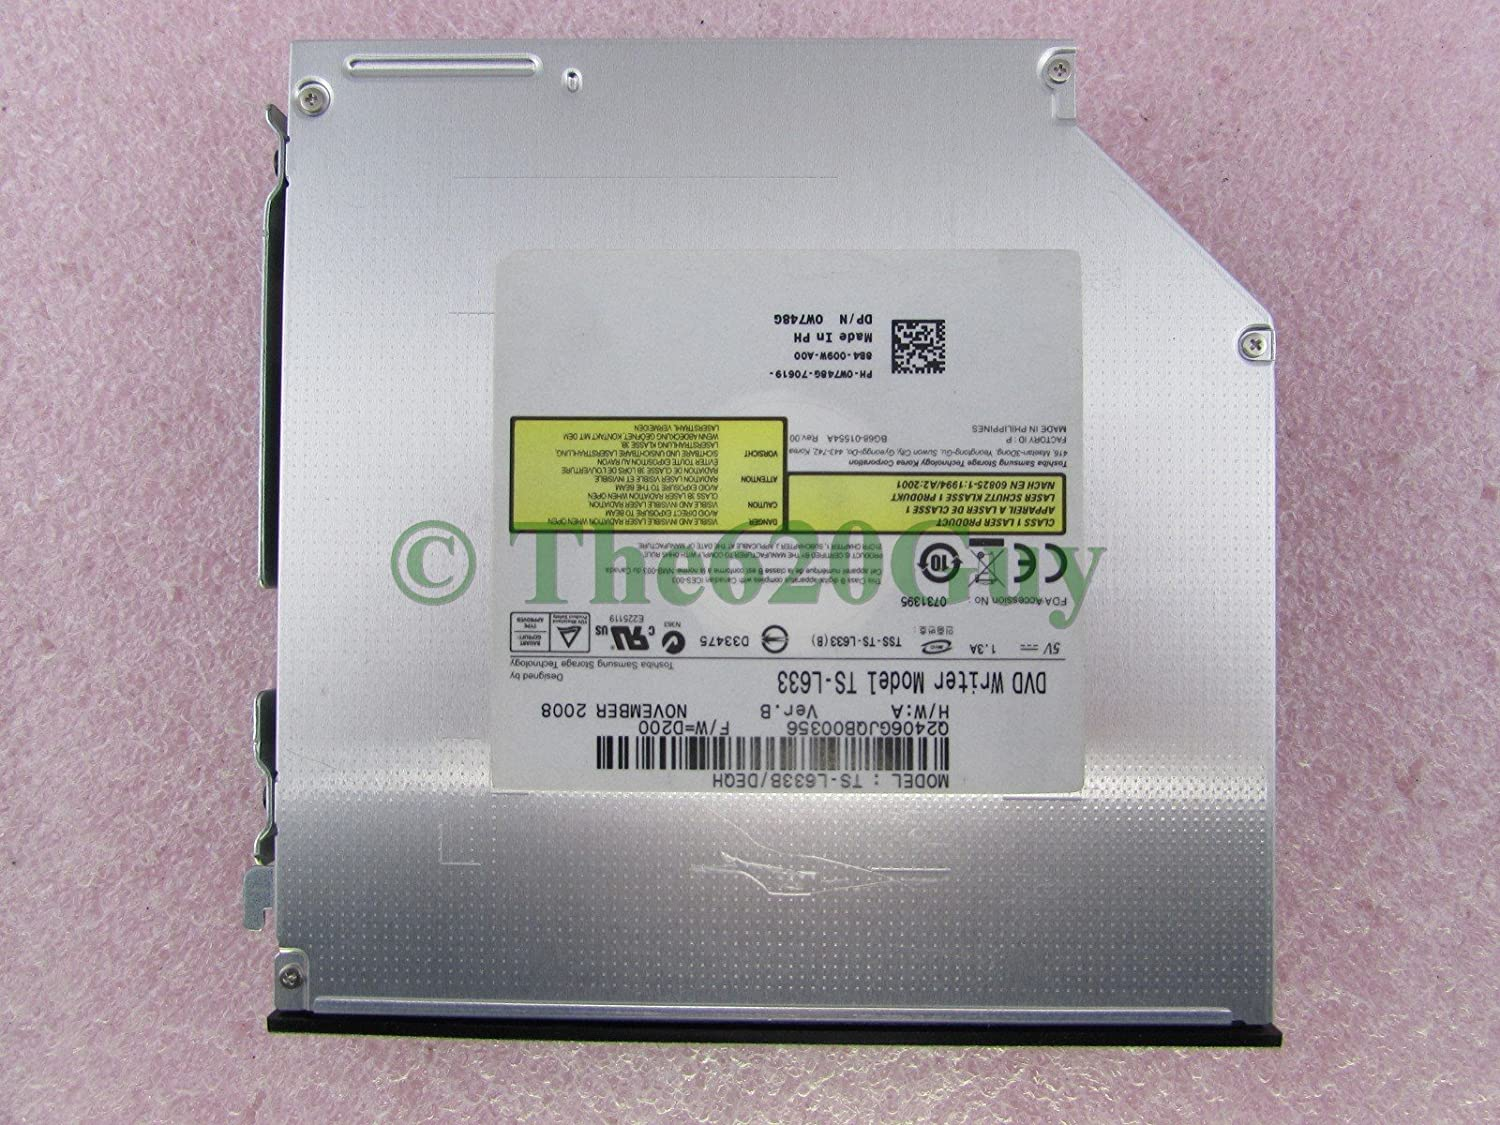 Dell Optiplex 980 960 760 Slimline DVD/±RW W748G SATA Optical Drive ODD TS-L633